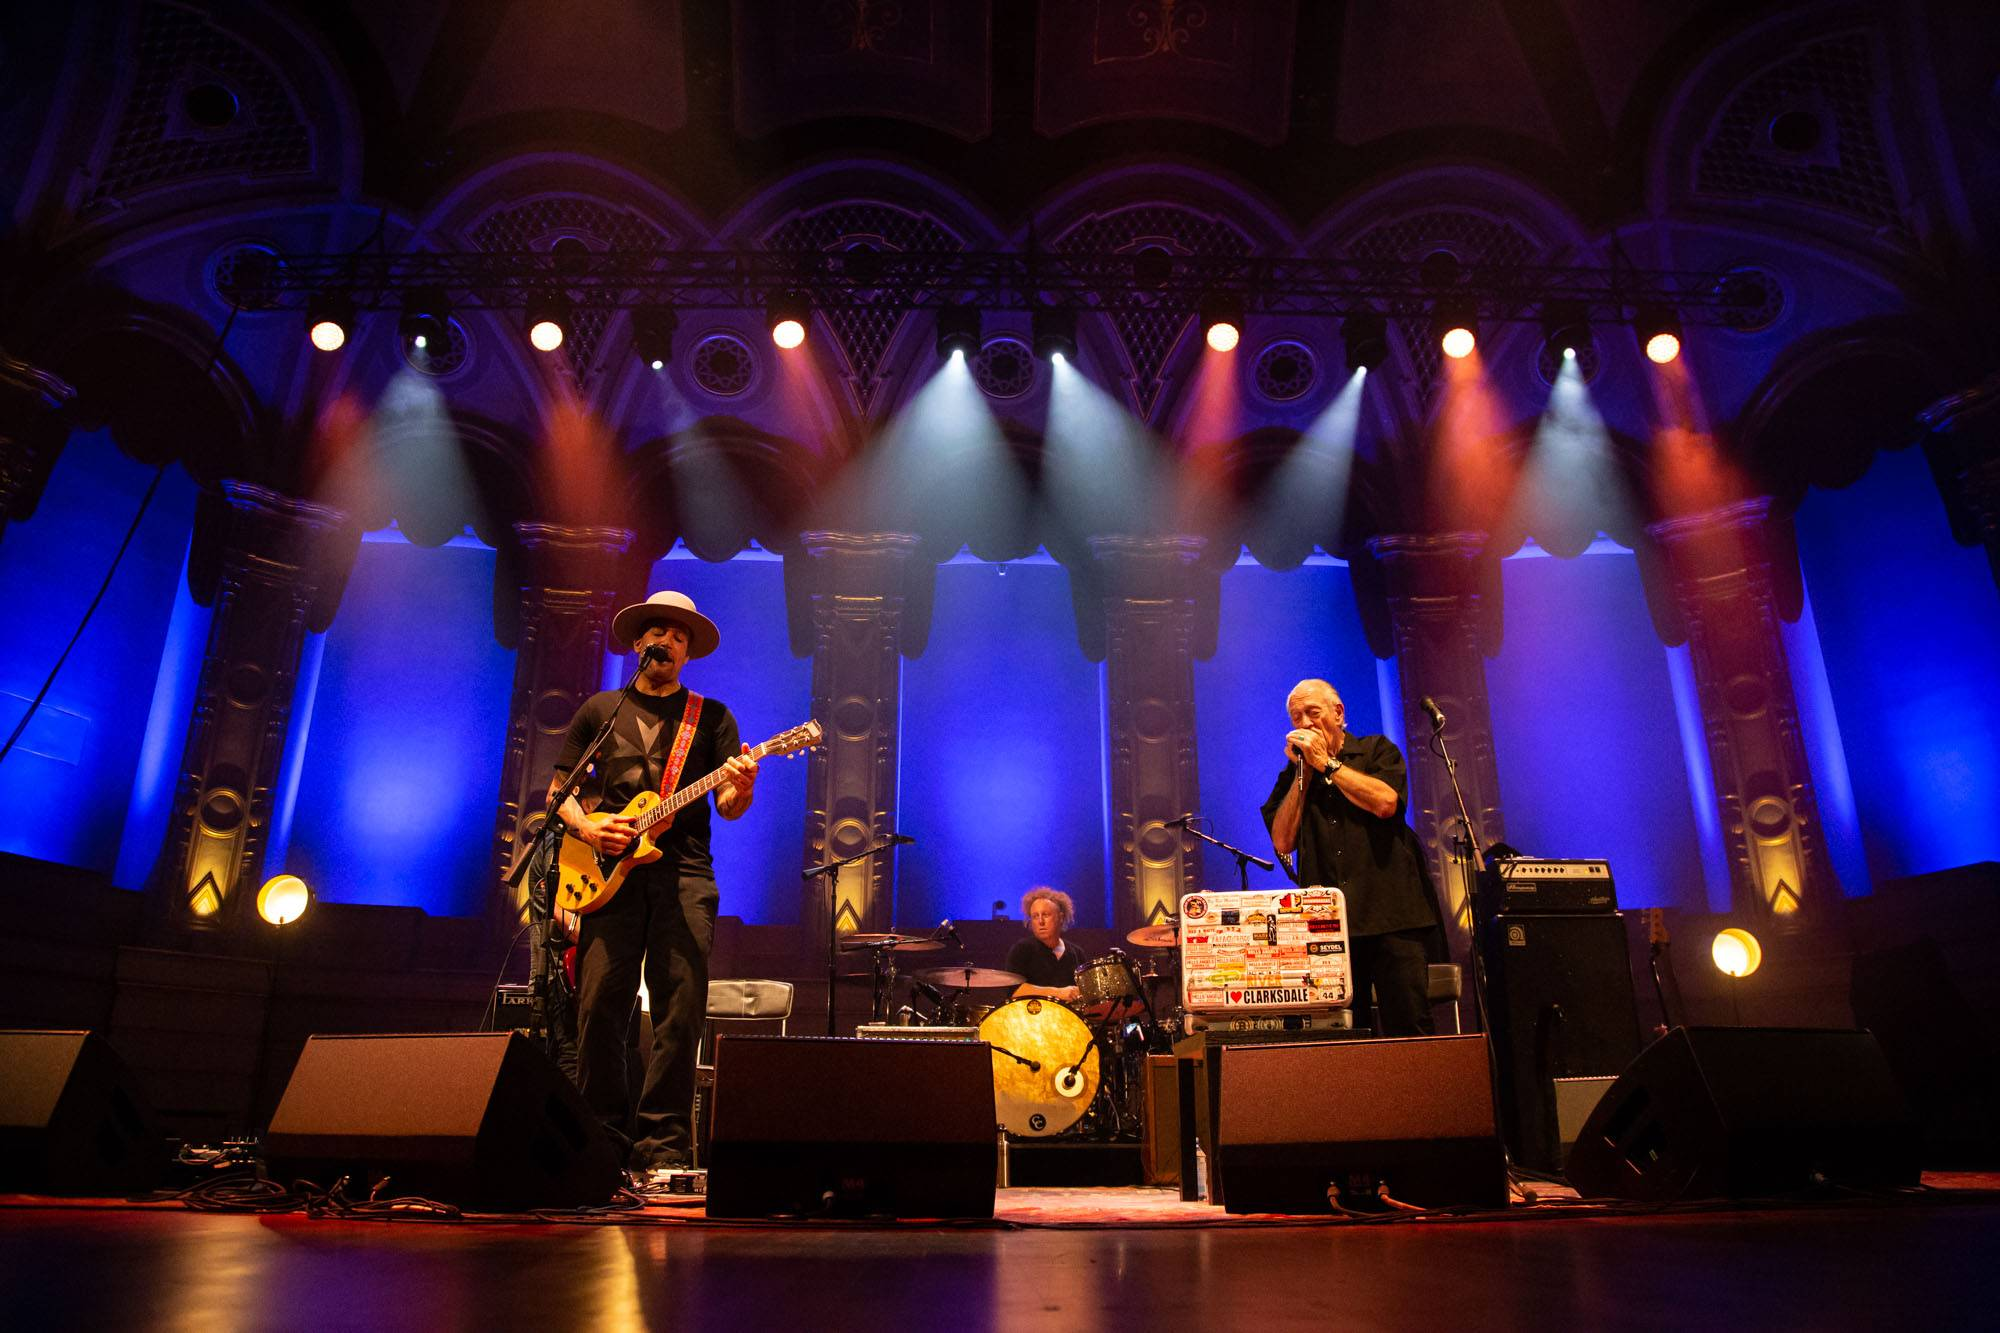 Ben Harper and Charlie Musselwhite at the Orpheum Theatre, Vancouver, Aug 23 2018. Kirk Chantraine photo.